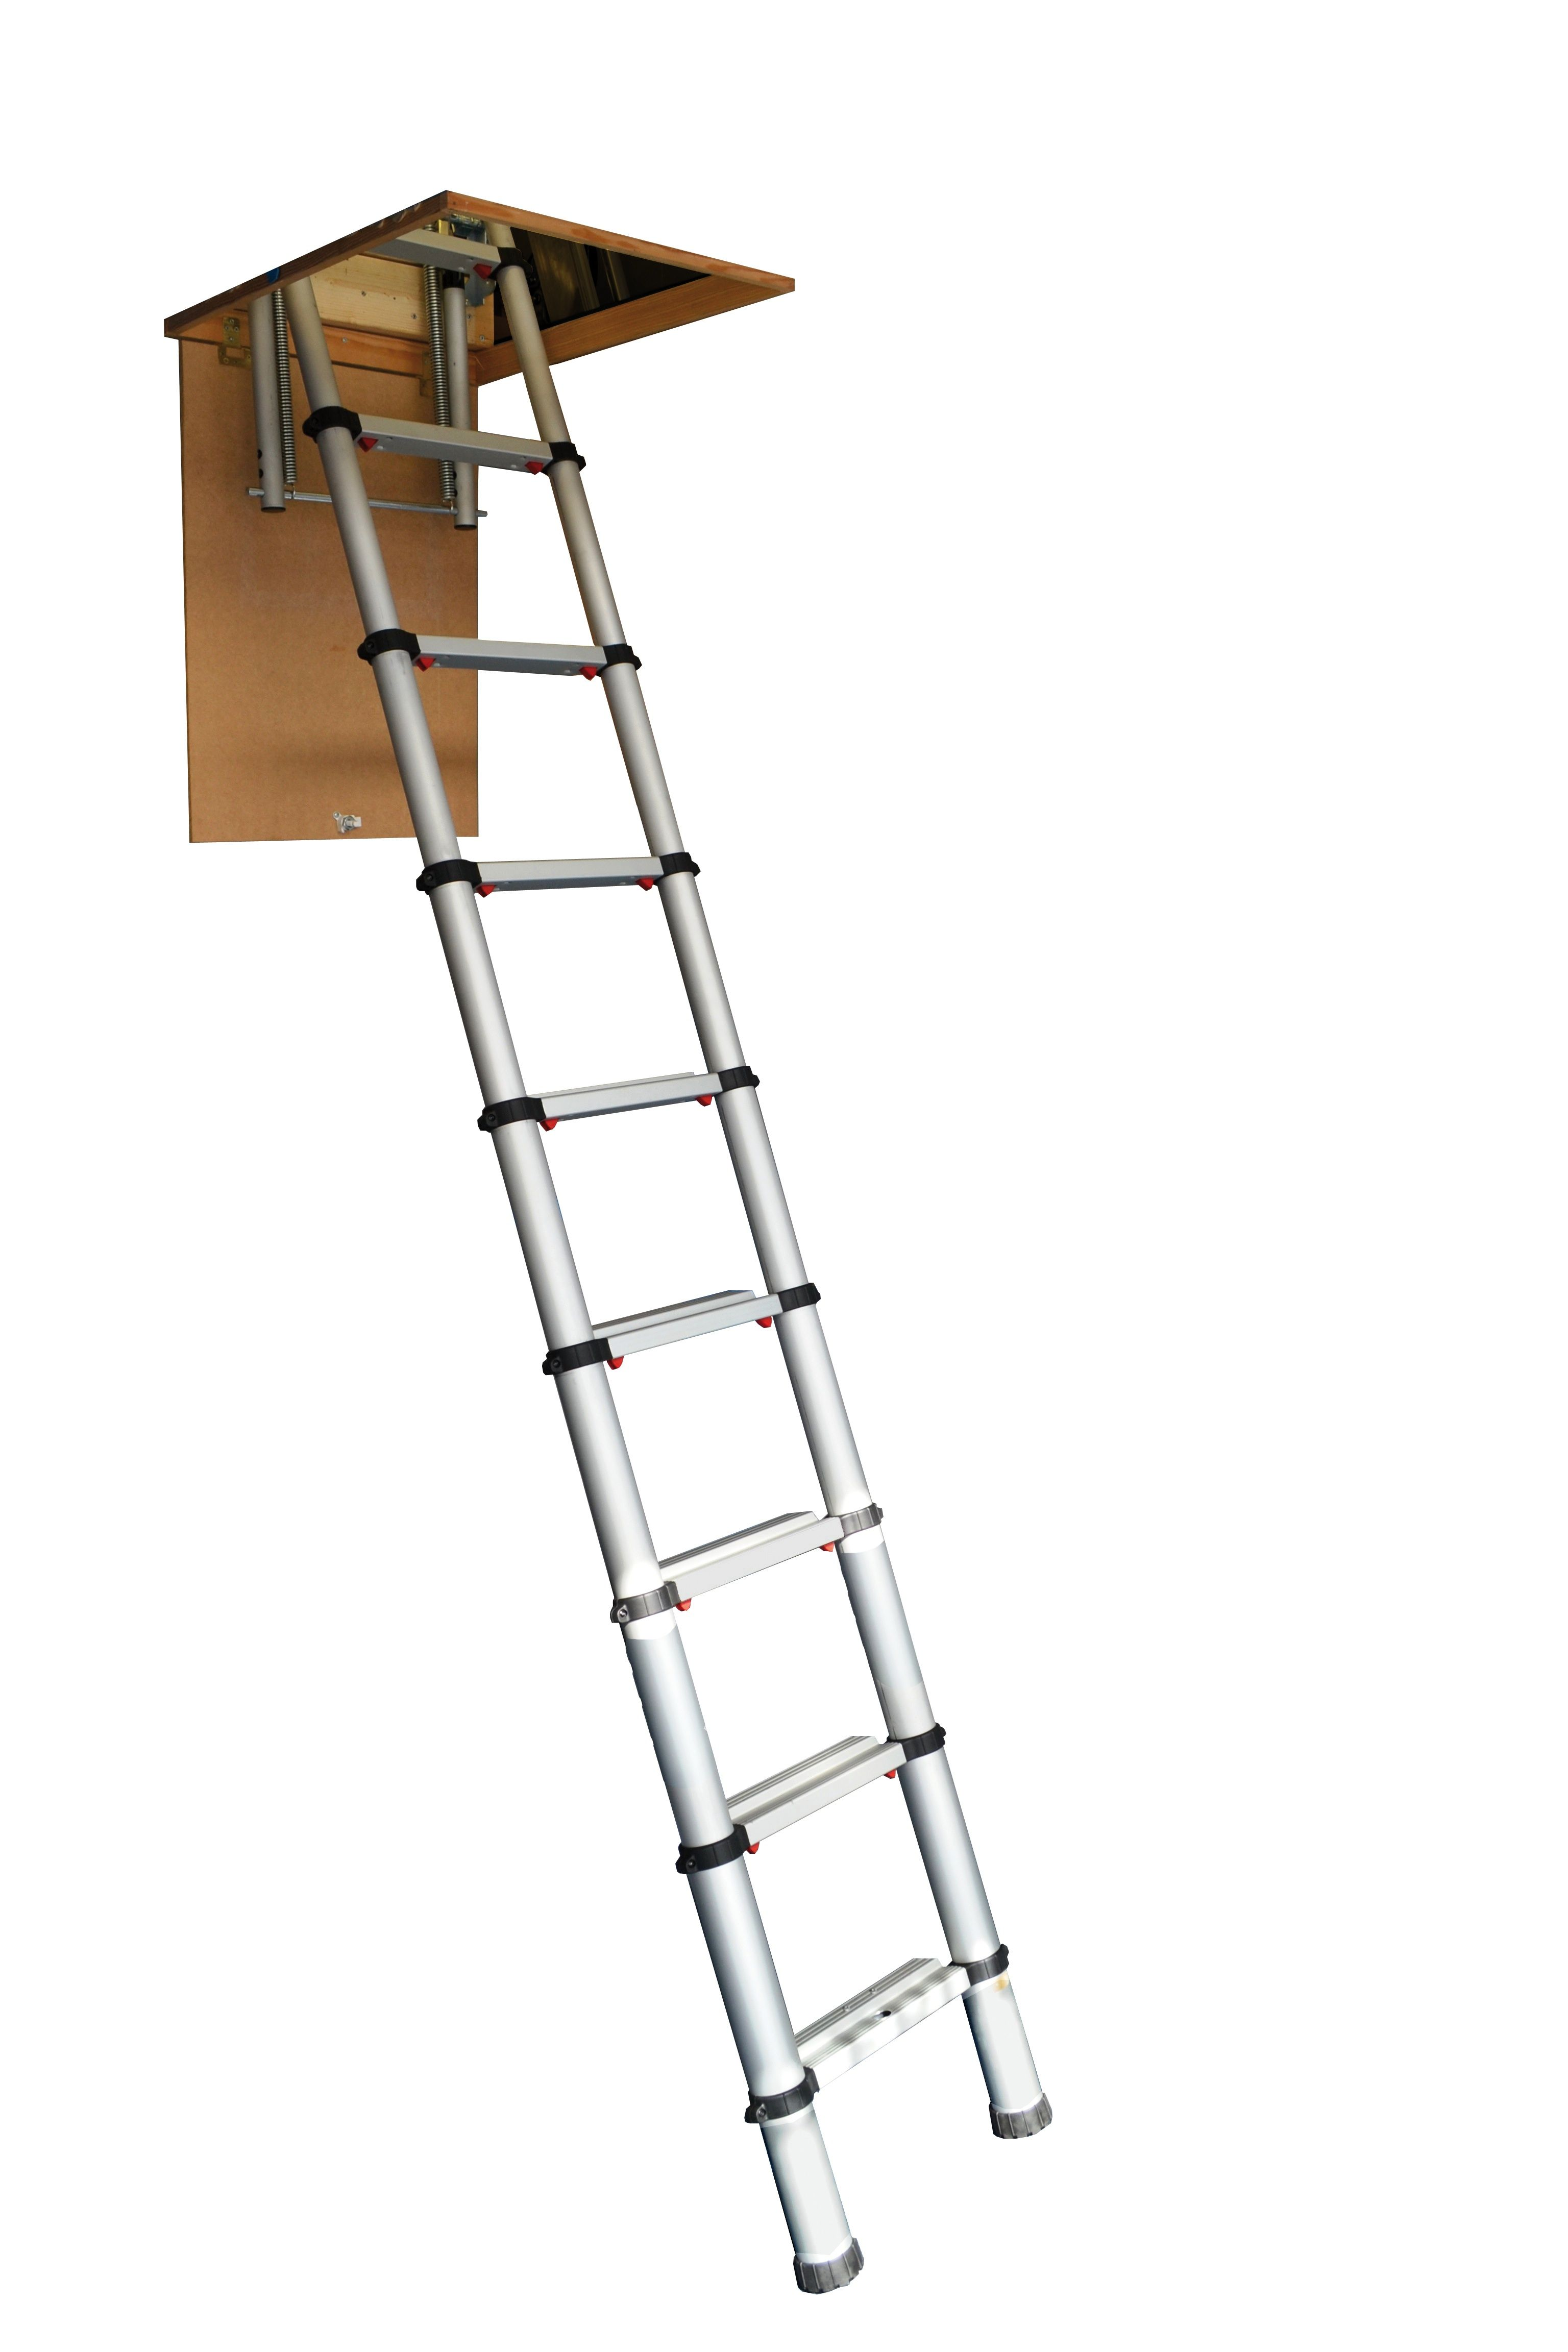 The Youngman Telescopic Loft Ladder Our New Telescopic Ladder Is Probably The Smartest And Most Compact Solution To A Ver Loft Ladder Ladder Telescopic Ladder